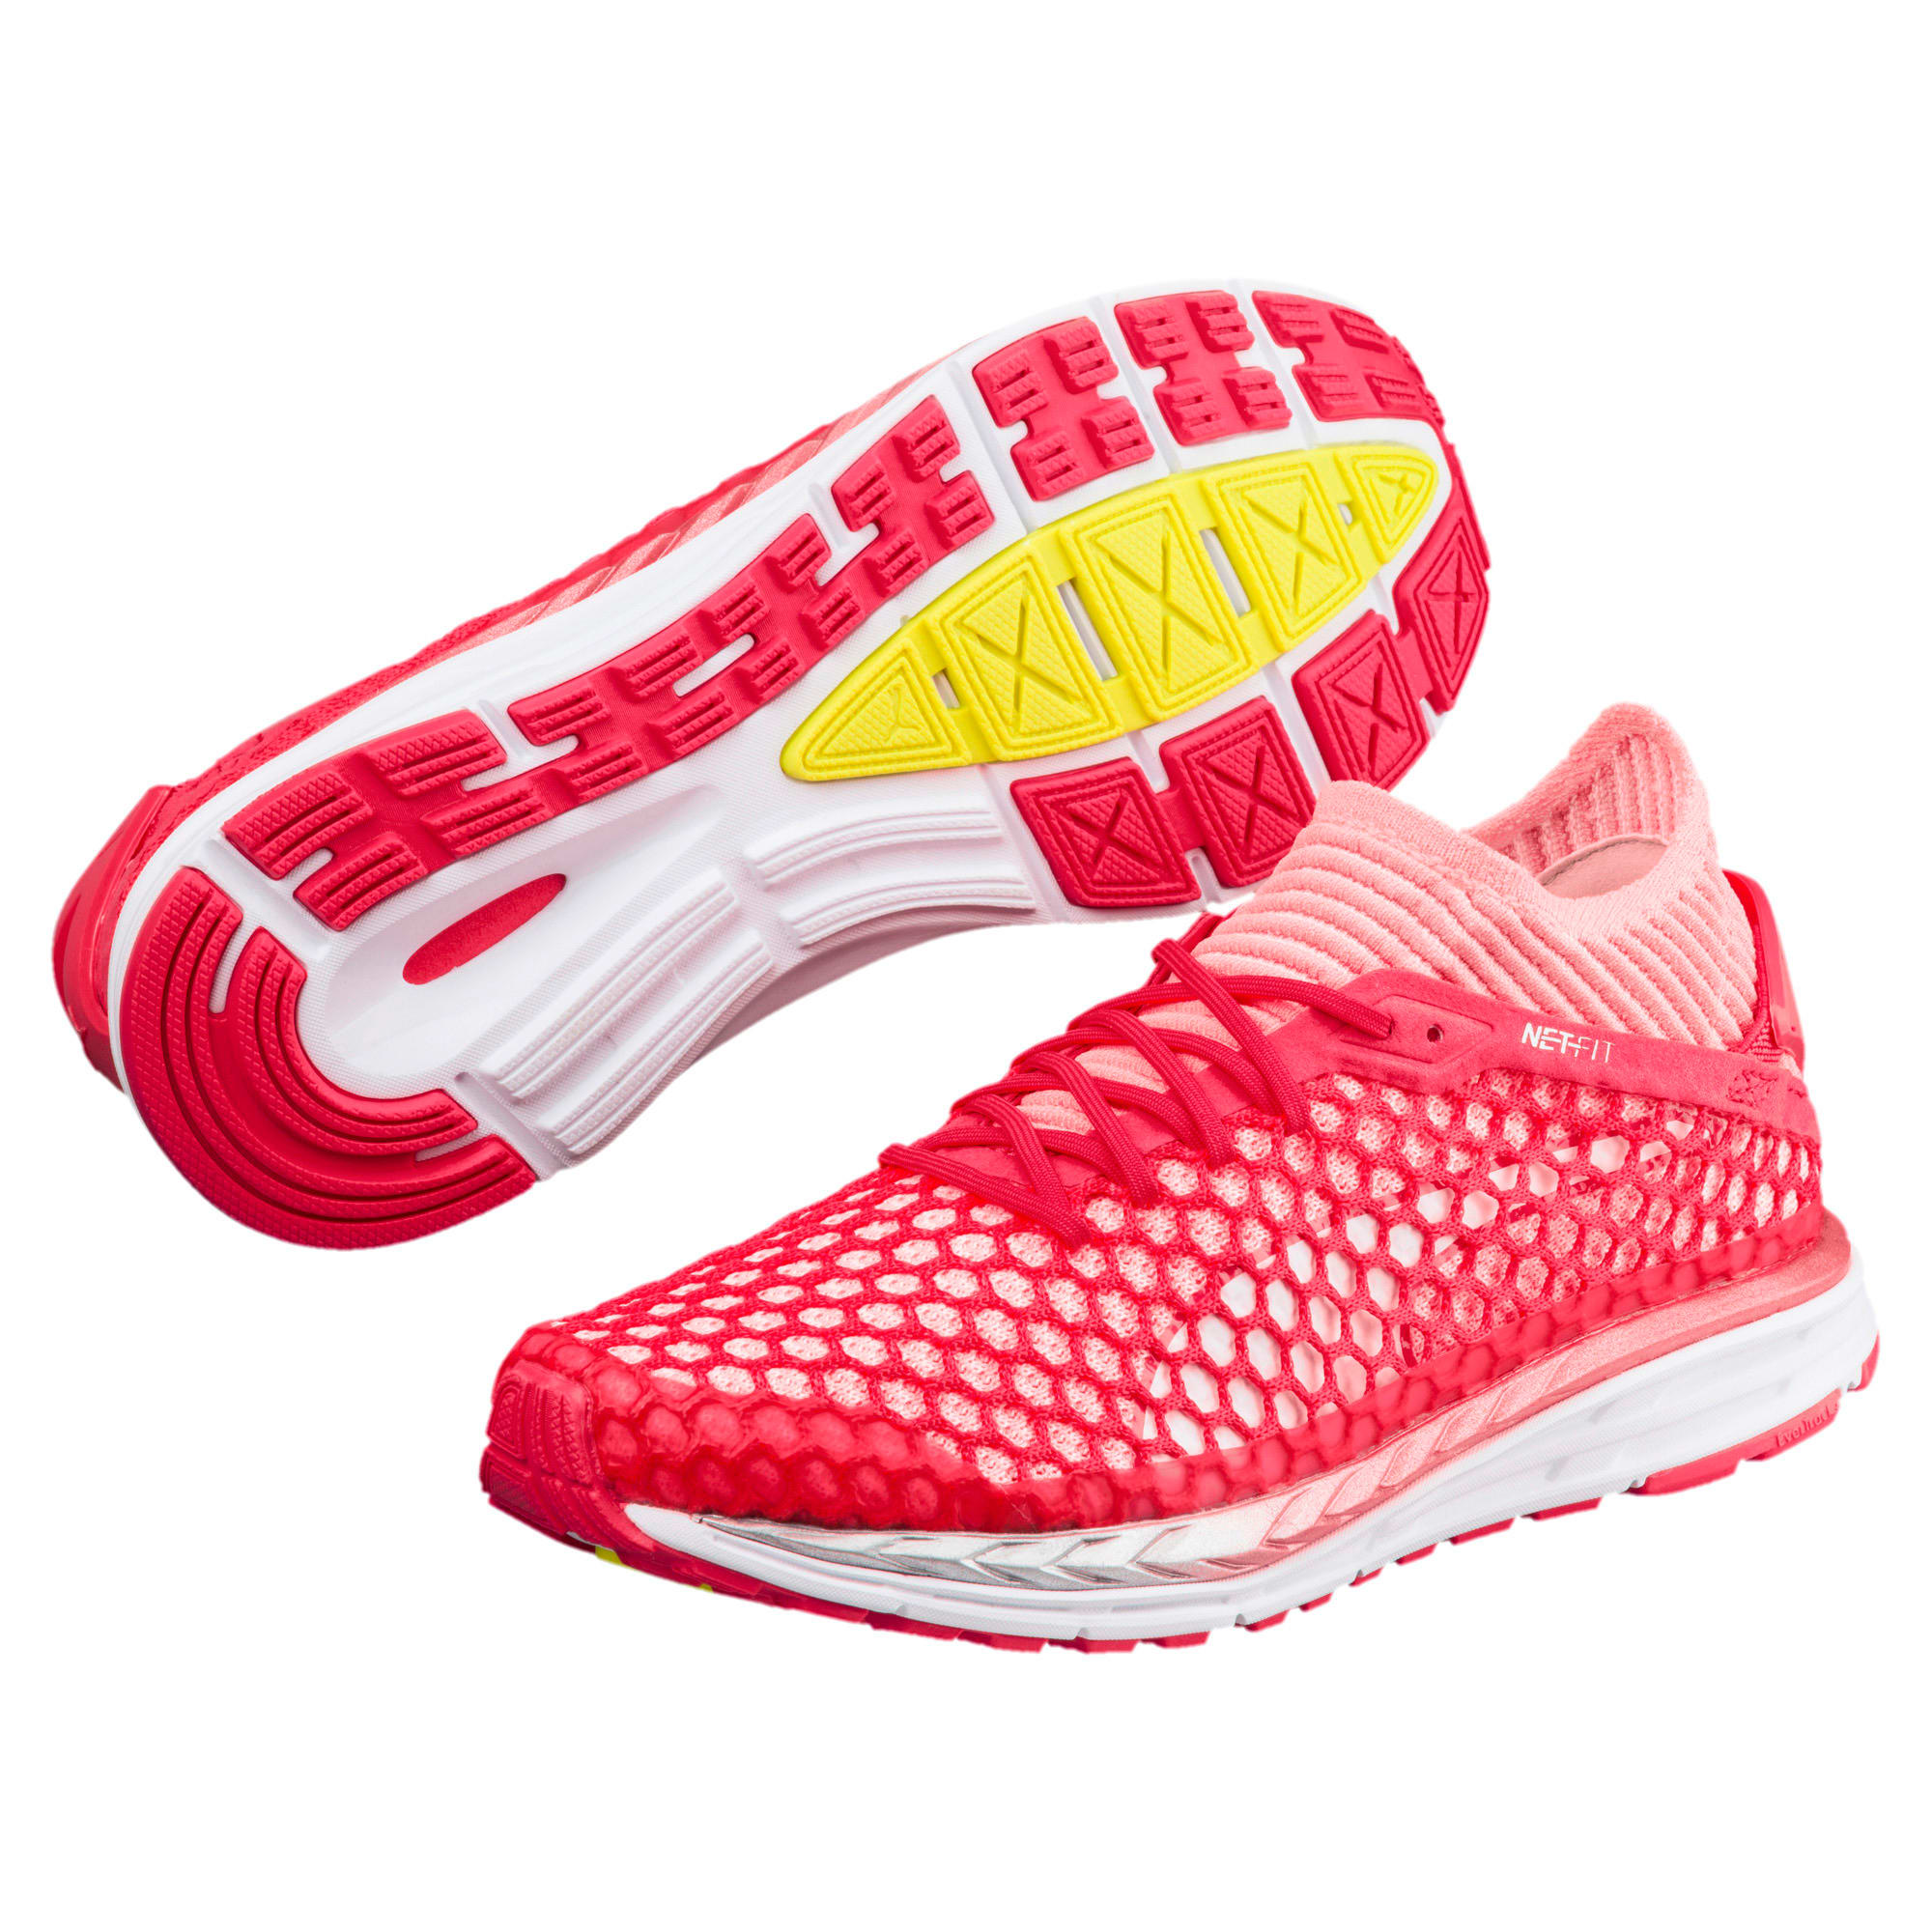 Thumbnail 2 of Speed IGNITE NETFIT 2 Women's Running Shoes, Pink-Fluo Peach-White, medium-IND